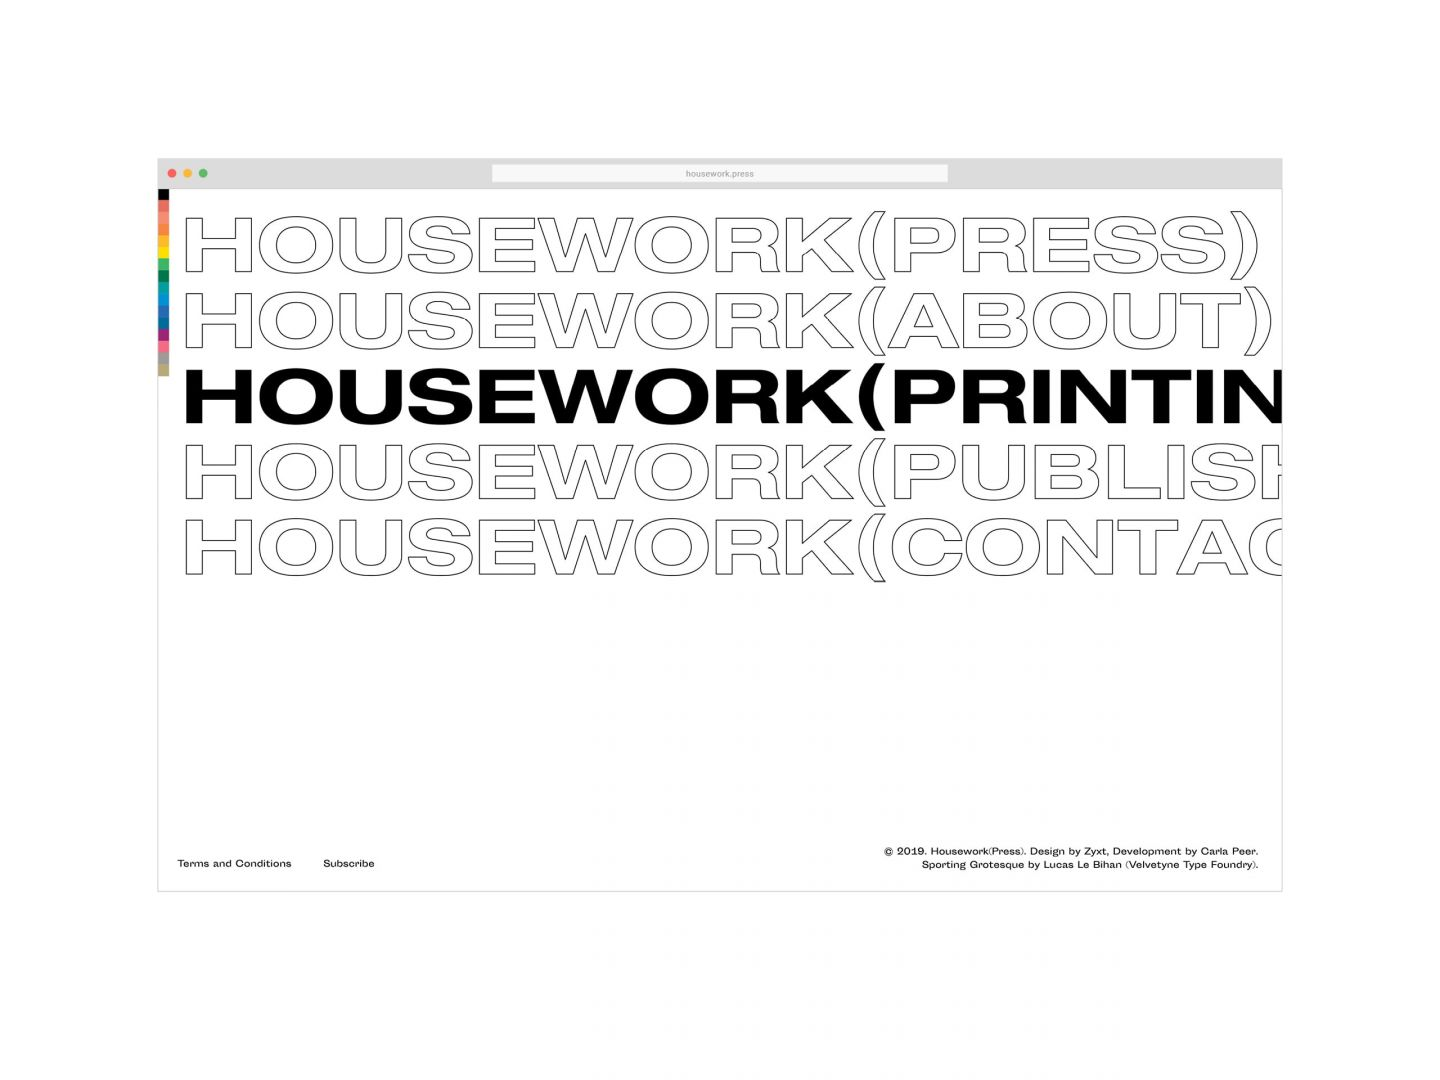 Zyxt_HouseworkPress_Identity-Design_5